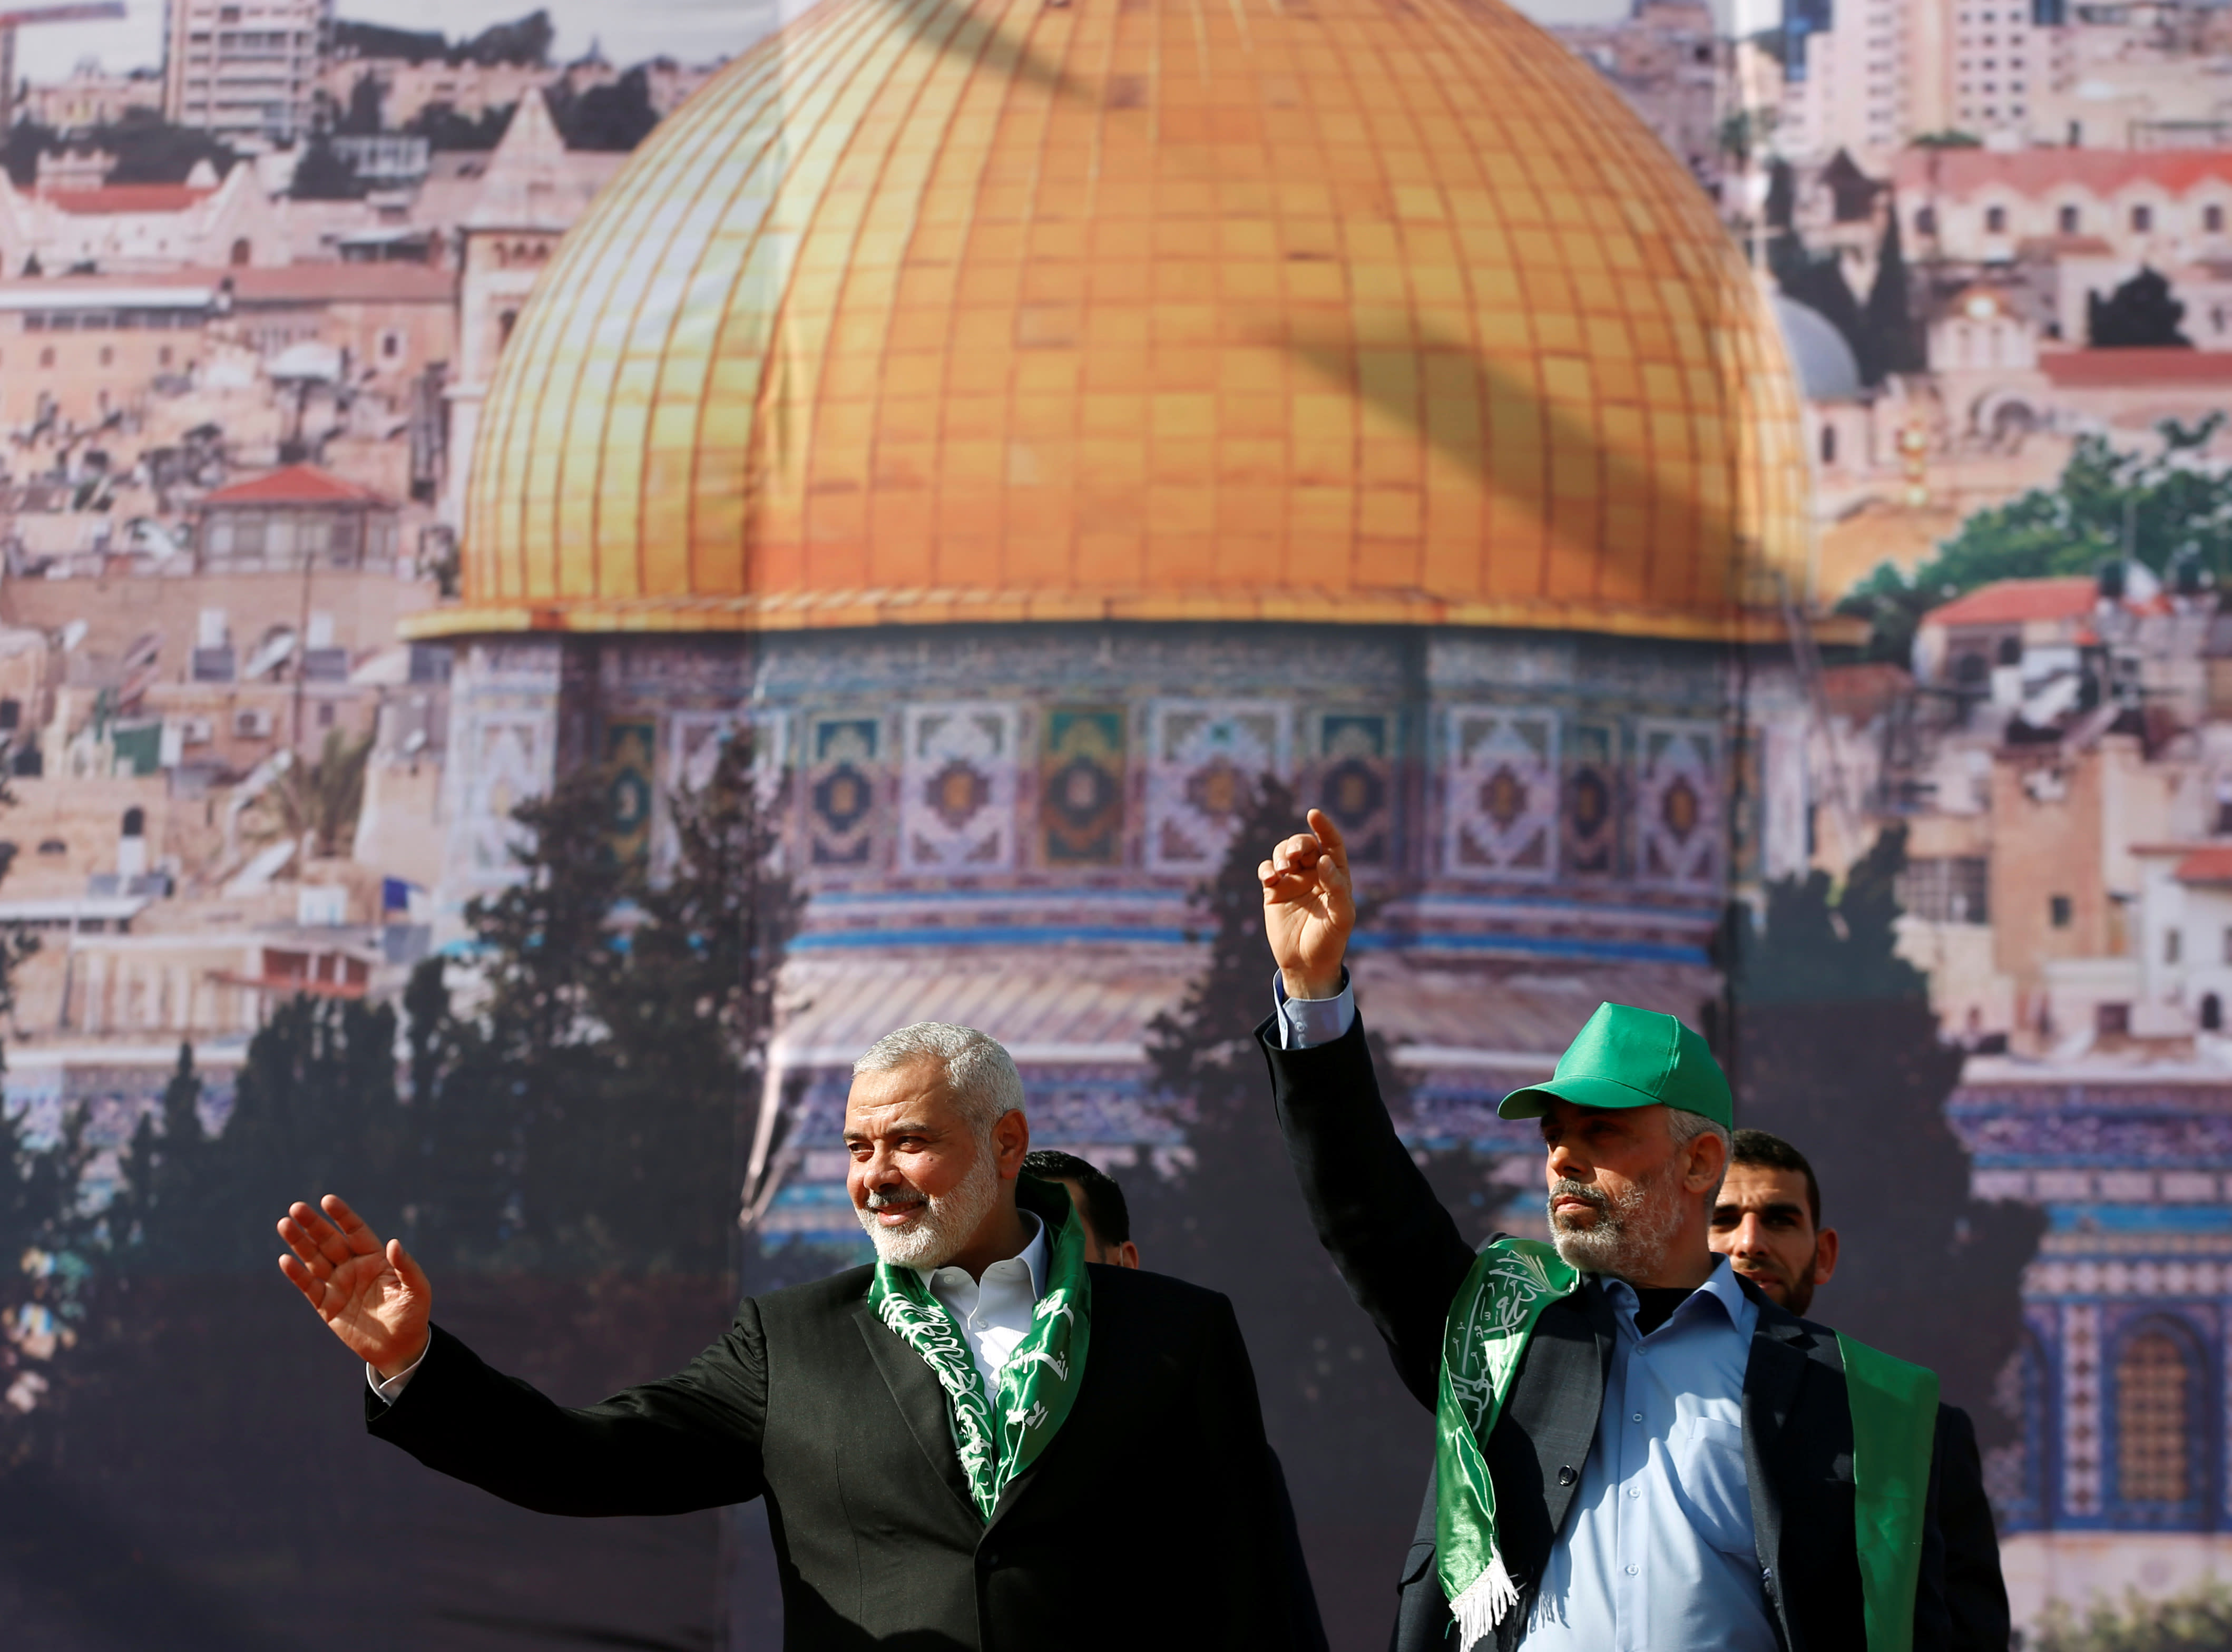 Hamas Chief Ismail Haniyeh and Gaza's Hamas Chief Yehya Al-Sinwar gesture to supporters during a rally marking the 30th anniversary of Hamas' founding in Gaza City, December 14 2017 (MOHAMMED SALEM/REUTERS)